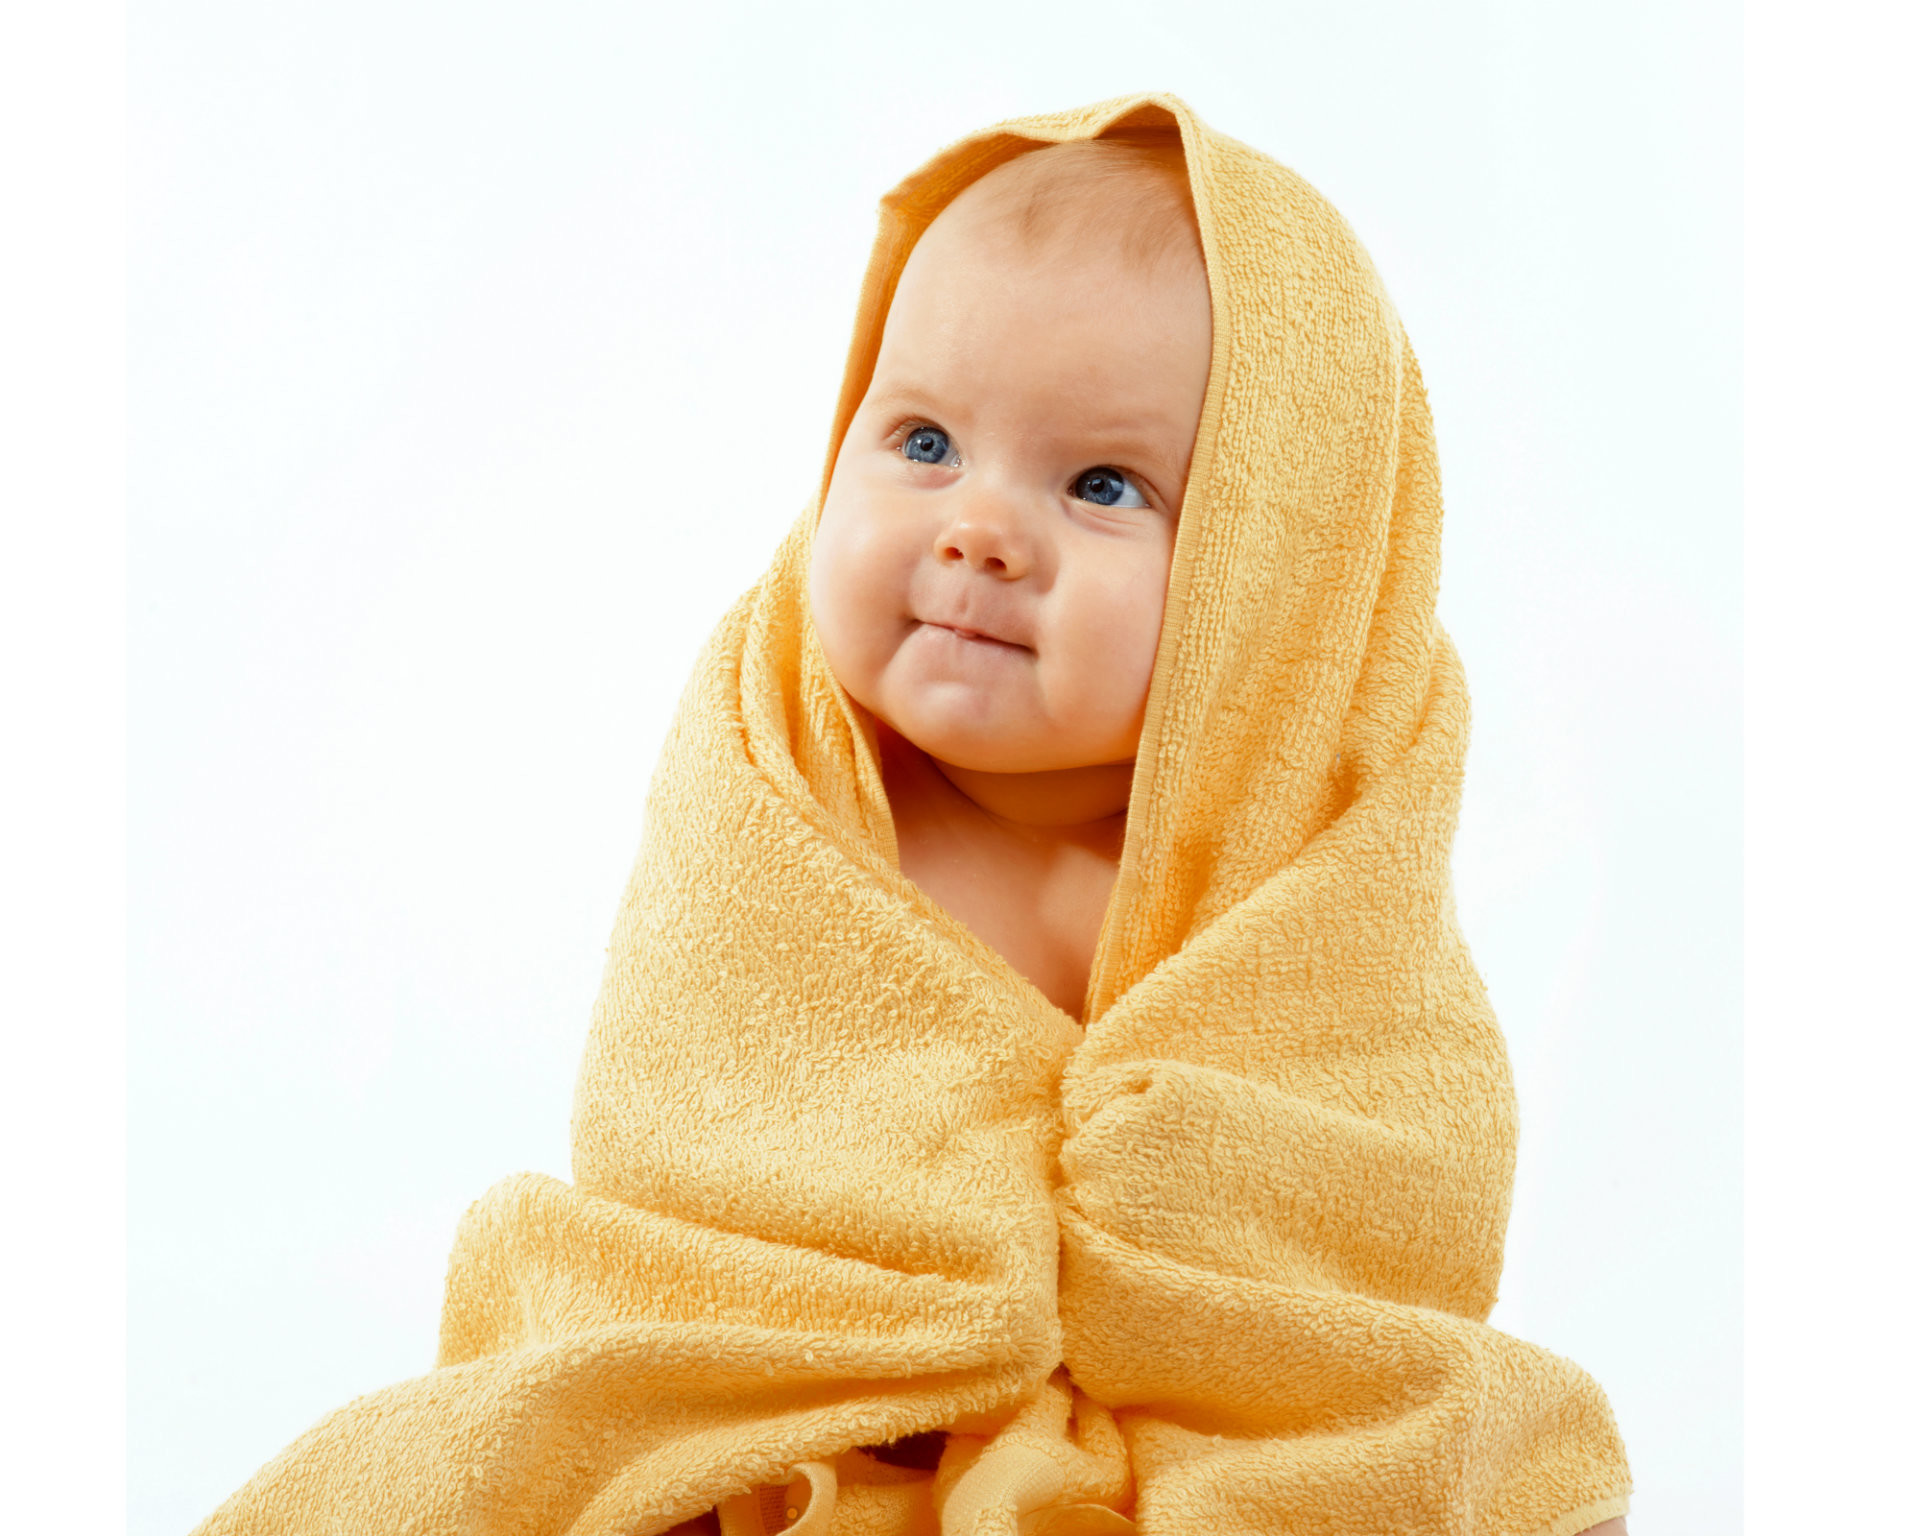 Cute Baby Wallpapers Latest: Cute Baby Boy Wallpapers (66+ Images